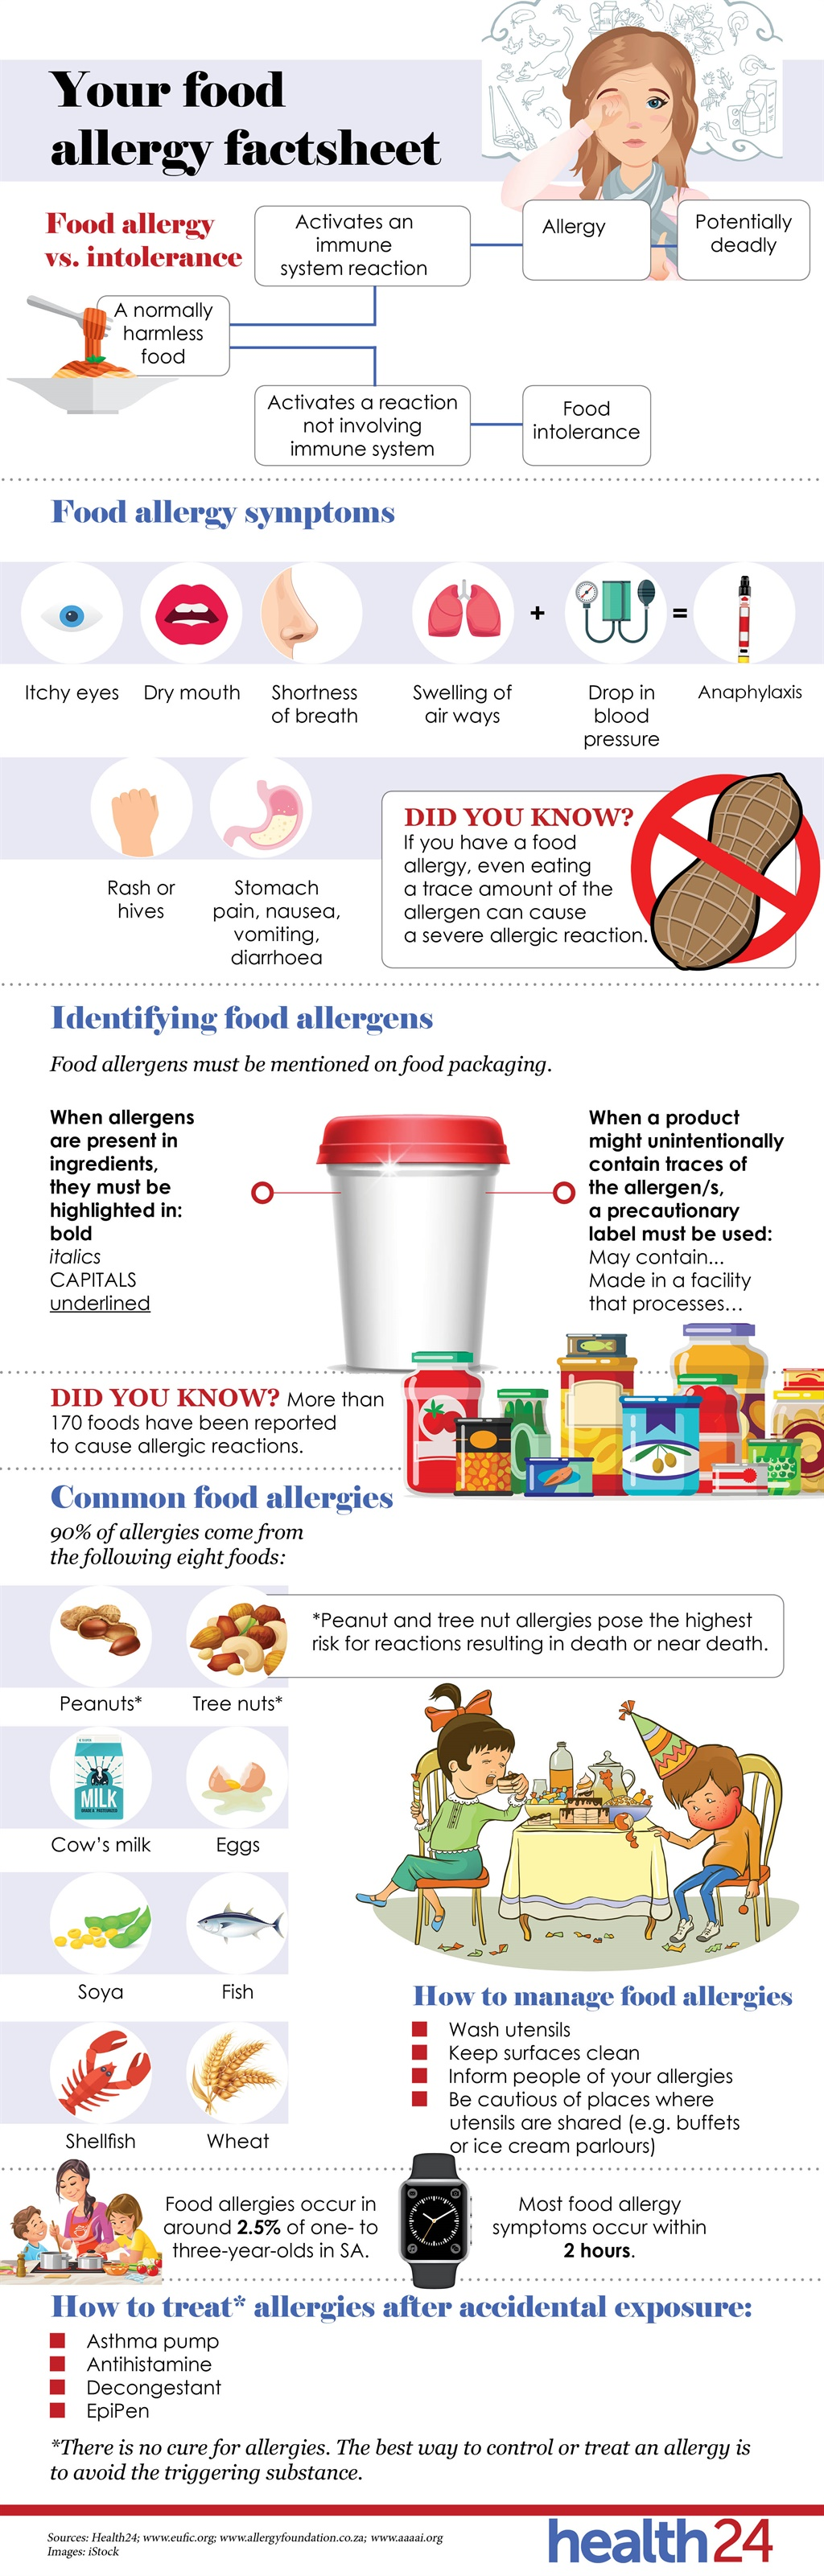 food, allergy, checklist, infographic, triggers, h